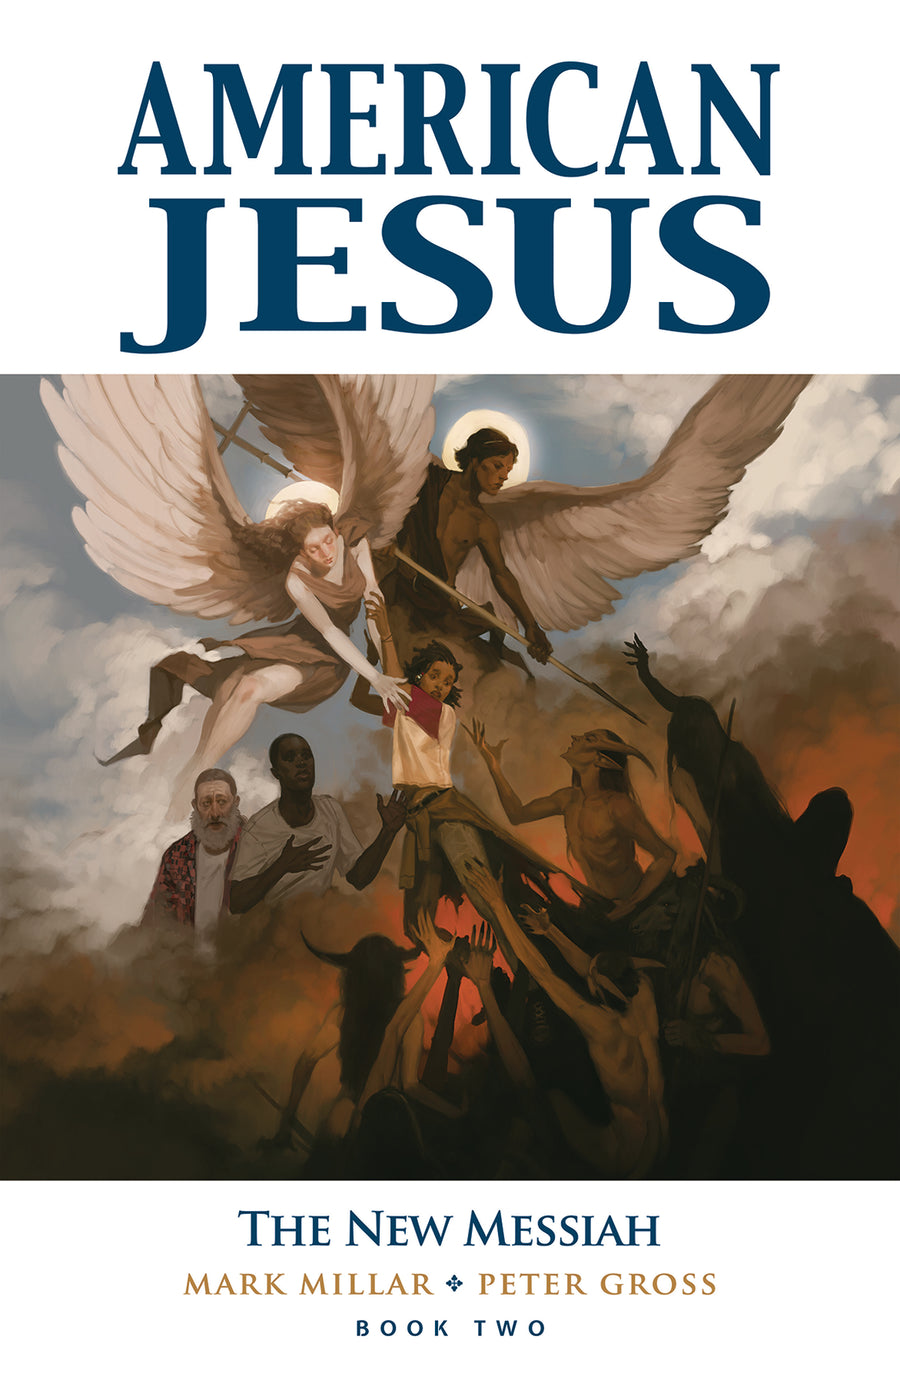 American Jesus Volume 2 The New Messiah